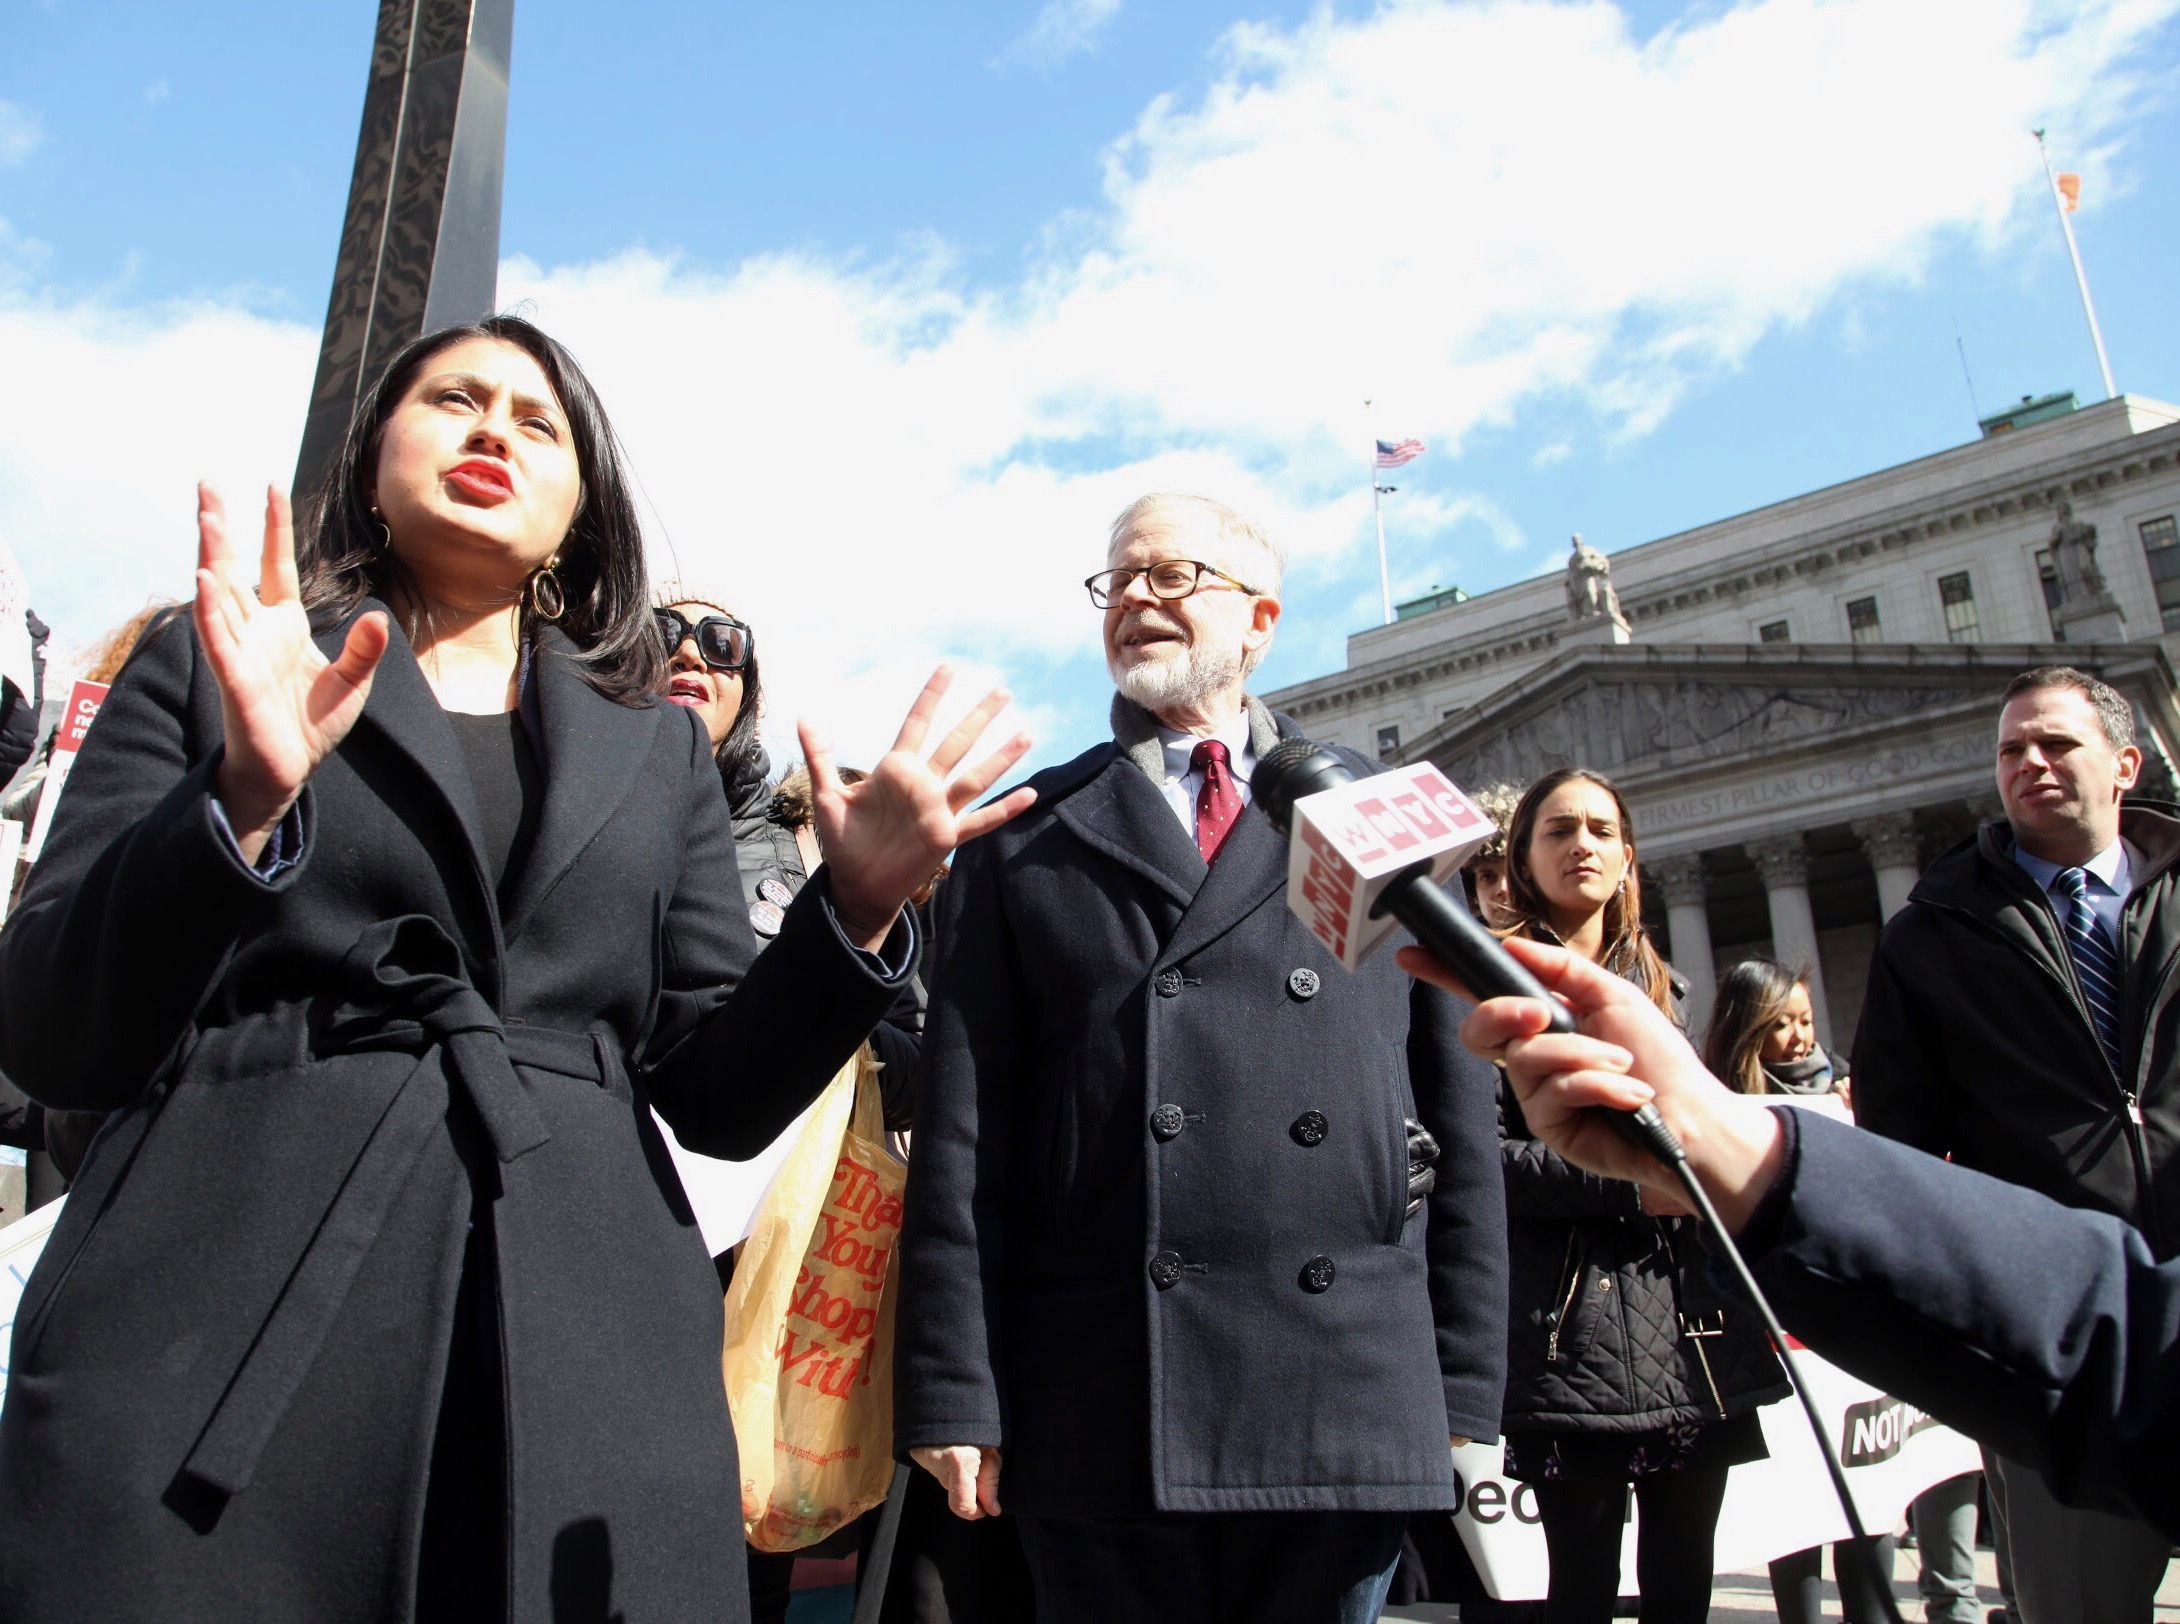 State Sen. Jessica Ramos and Assemblymember Richard Gottfried have sponsored a bill that would enable survivors of human trafficking to get their criminal records cleared. Photo by Danielle Blunt